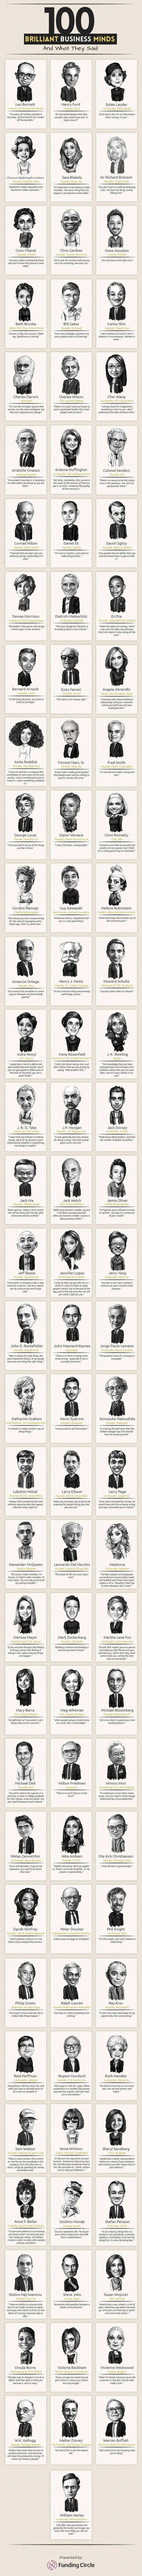 20151215080725-100-brilliant-business-minds-infographic